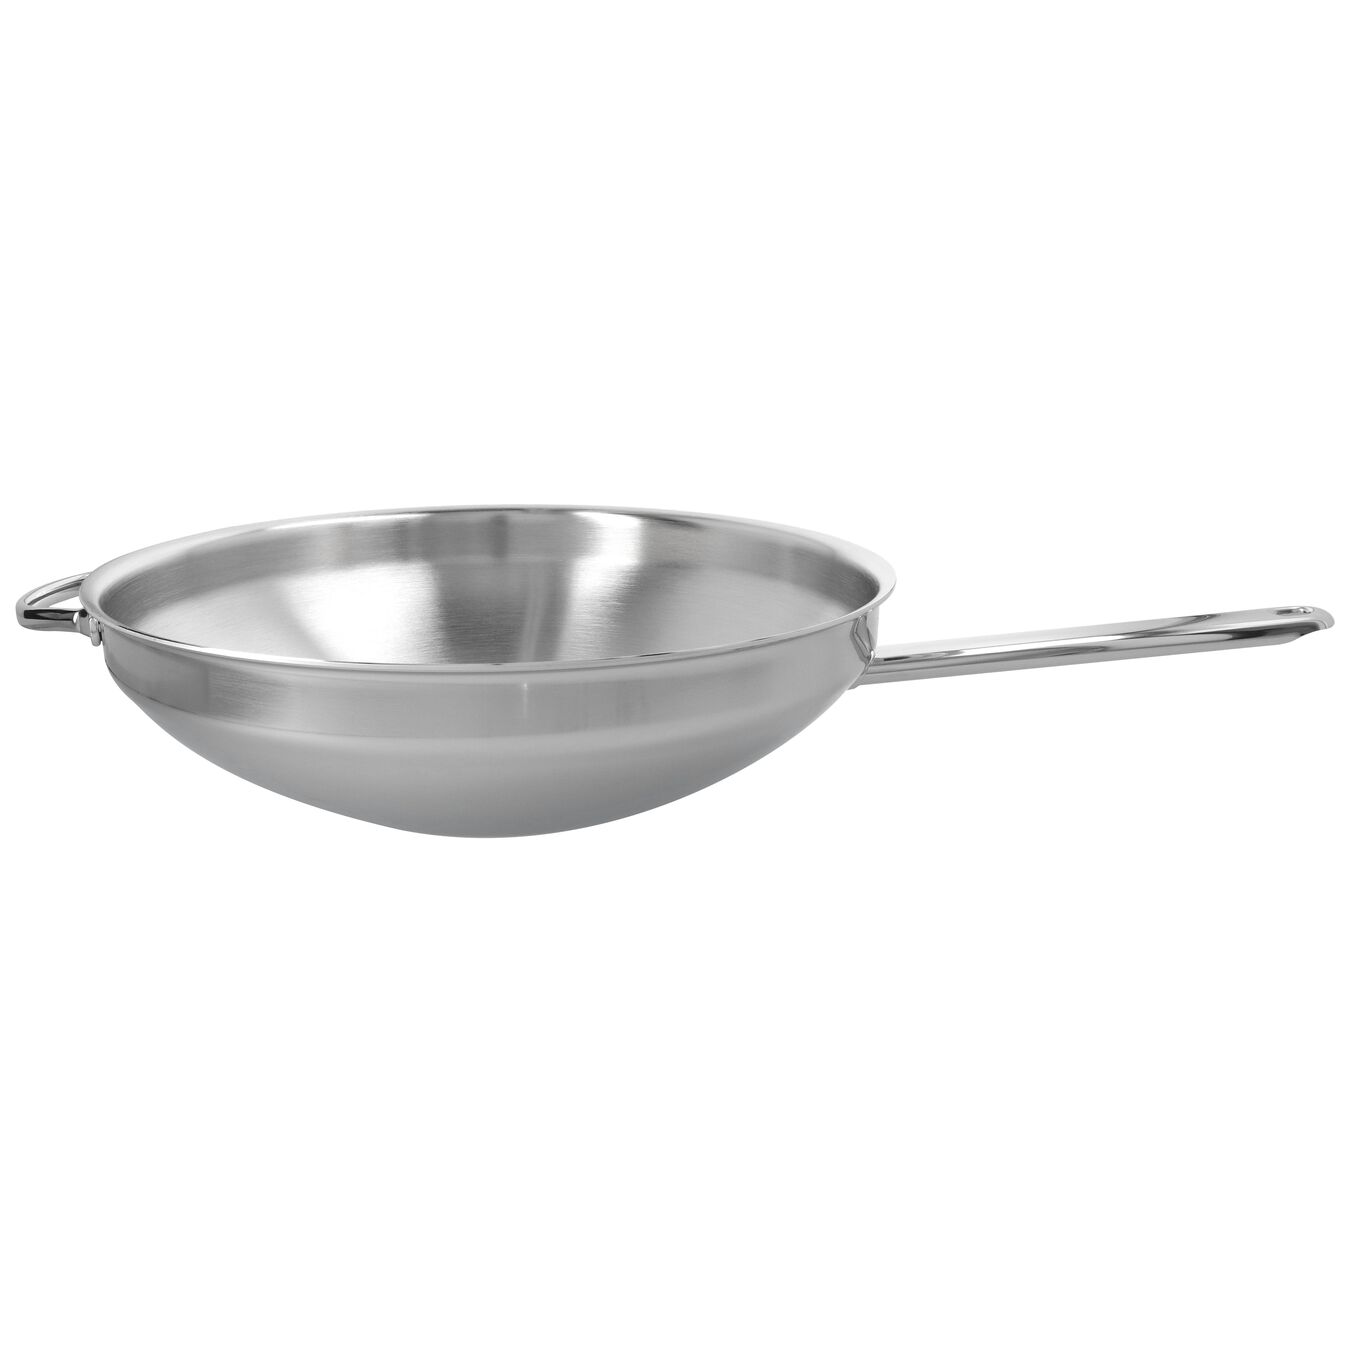 32 cm / 12.5 inch 18/10 Stainless Steel Wok without lid,,large 1